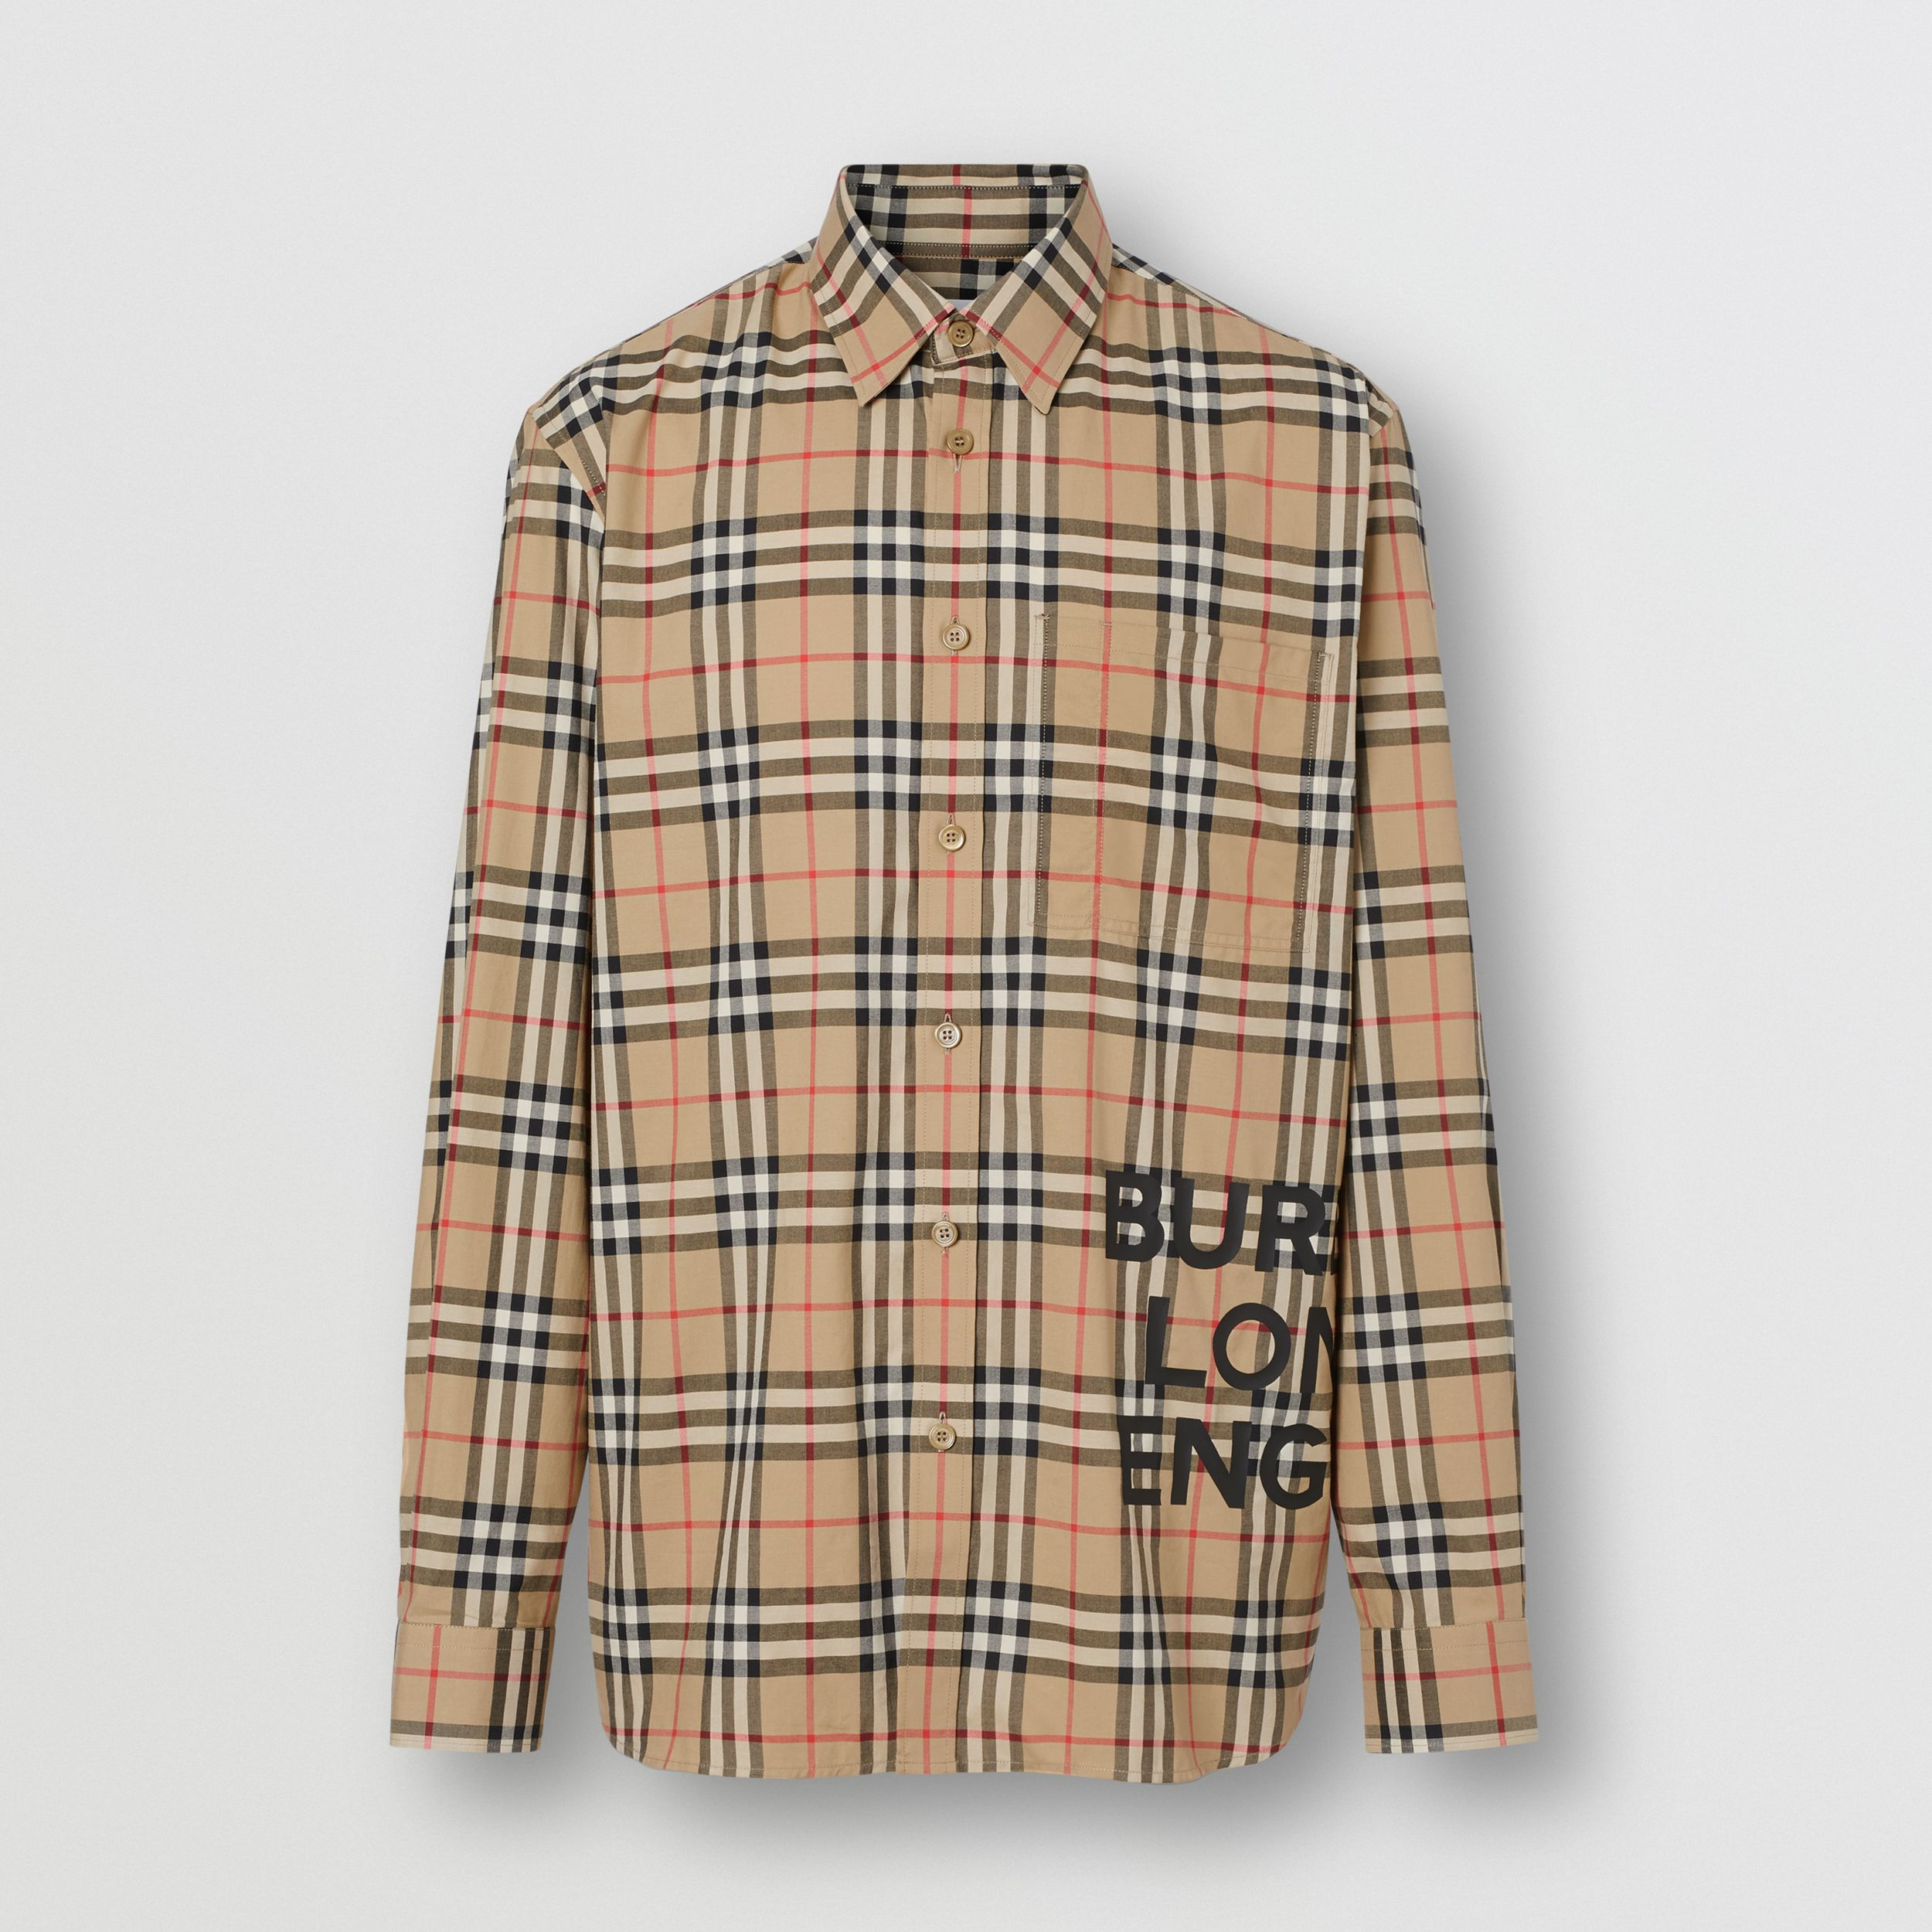 Logo Print Check Cotton Oversized Shirt in Archive Beige - Women | Burberry United States - 4